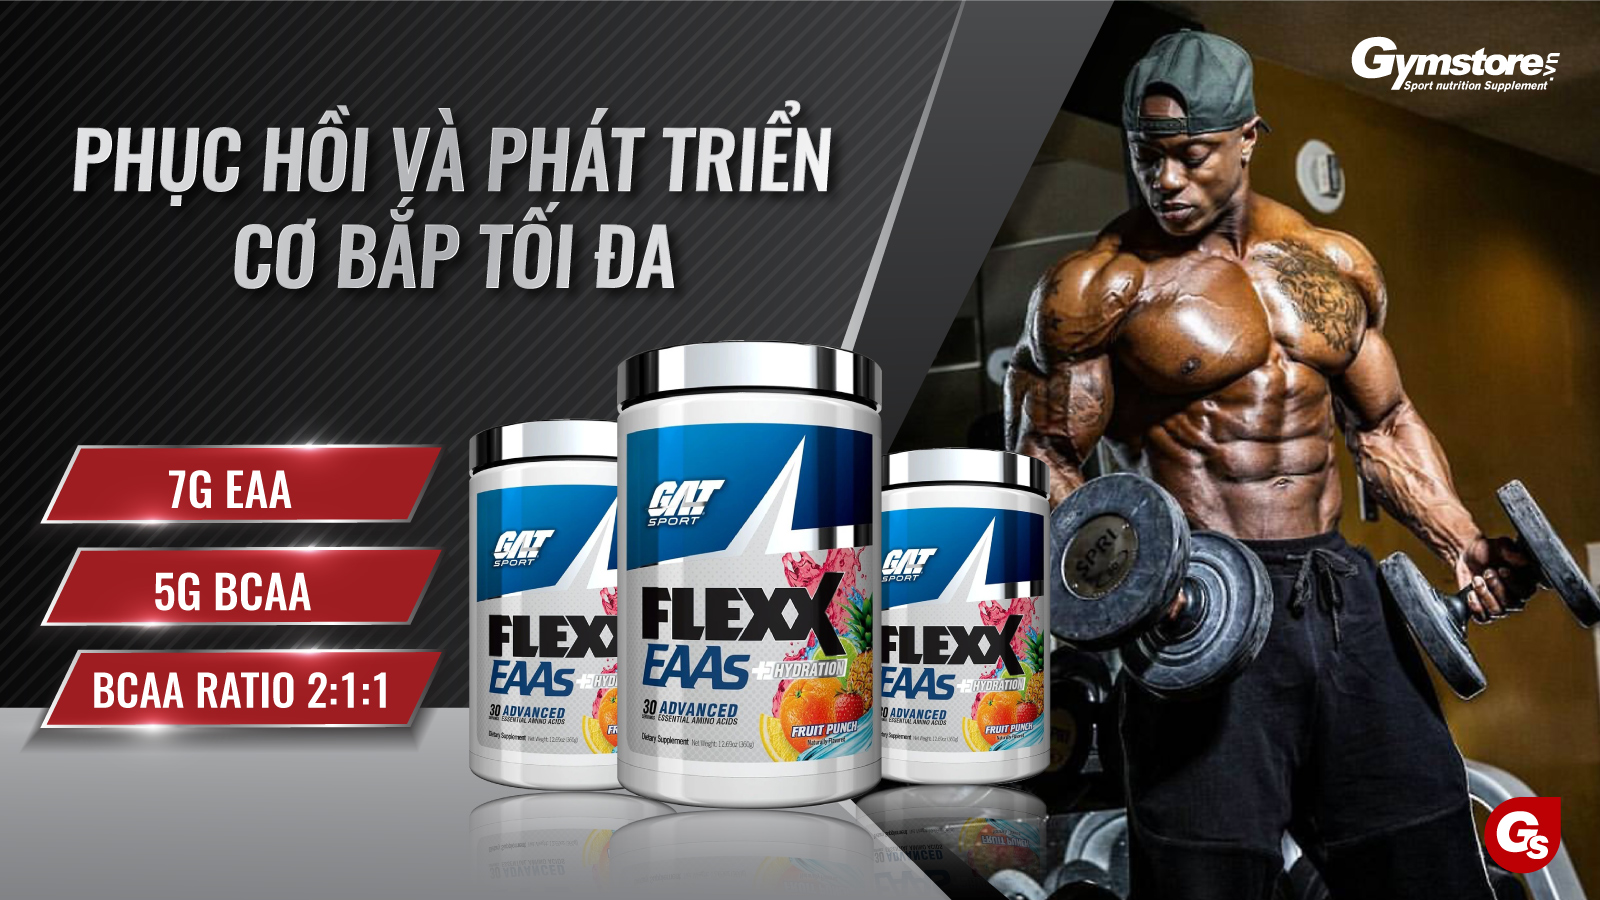 gat-sport-flexx-eaas-hydration-tong-hop-protein-gymstore